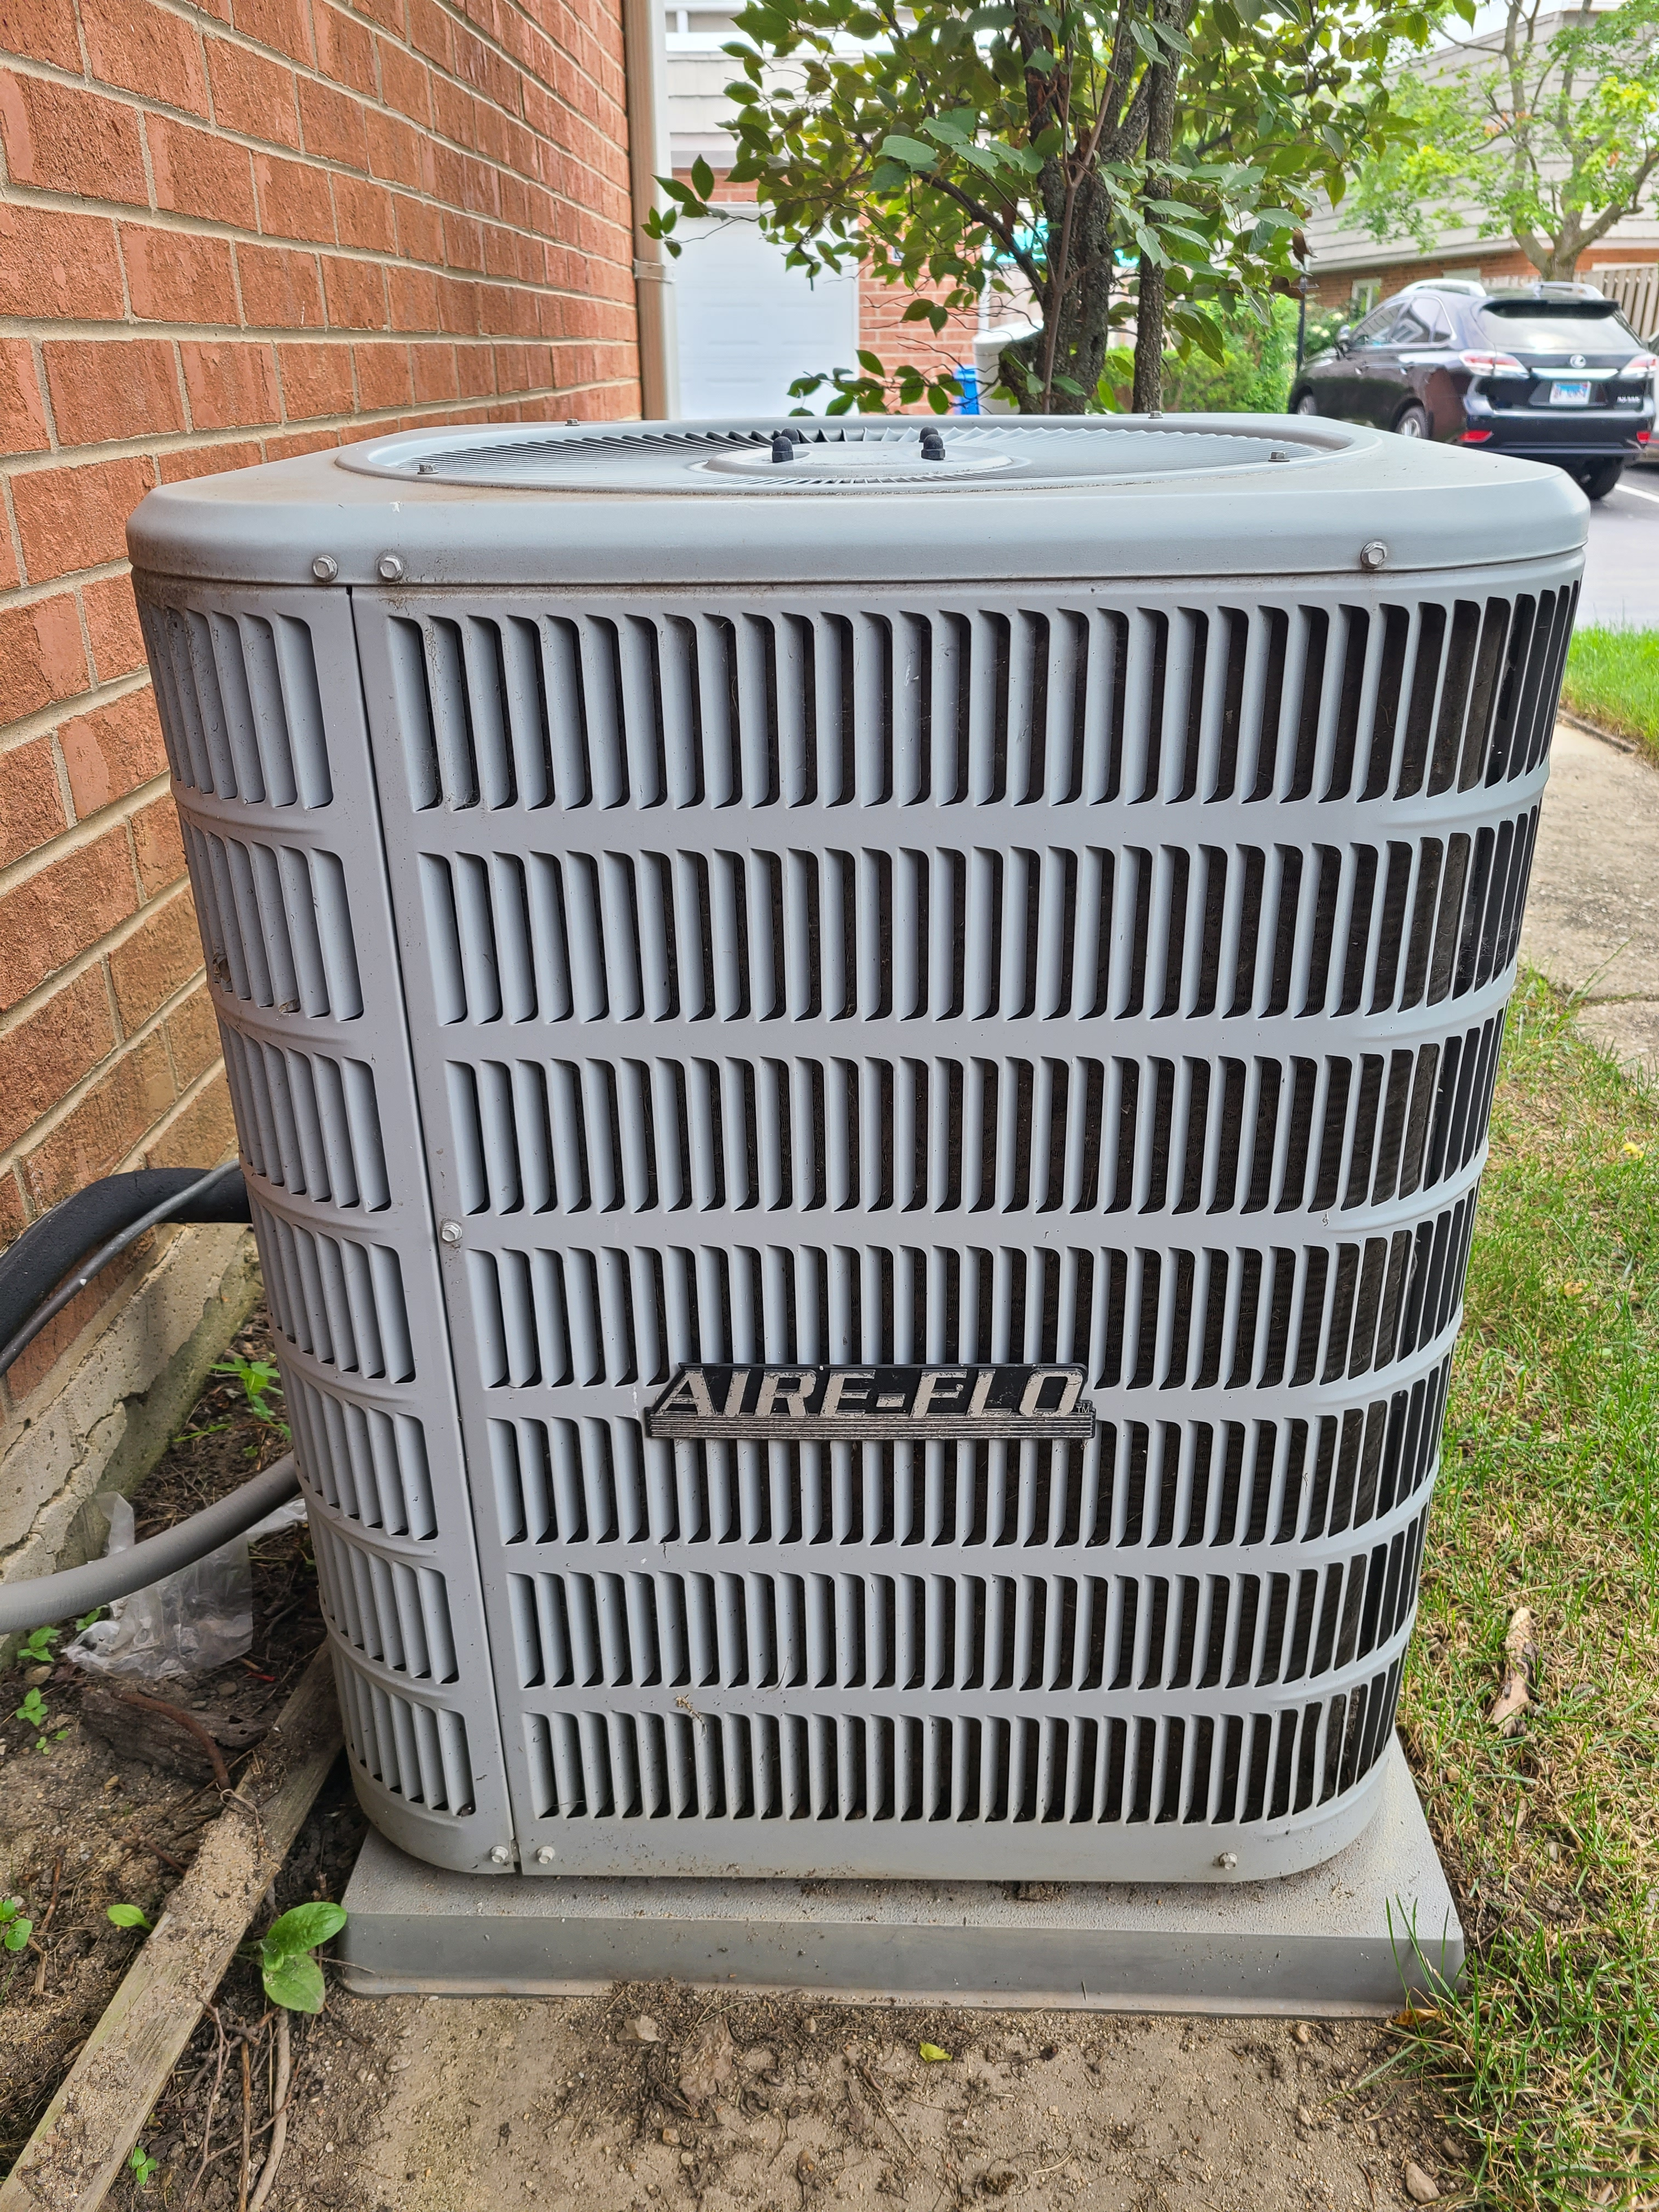 Aireflo air-conditioning